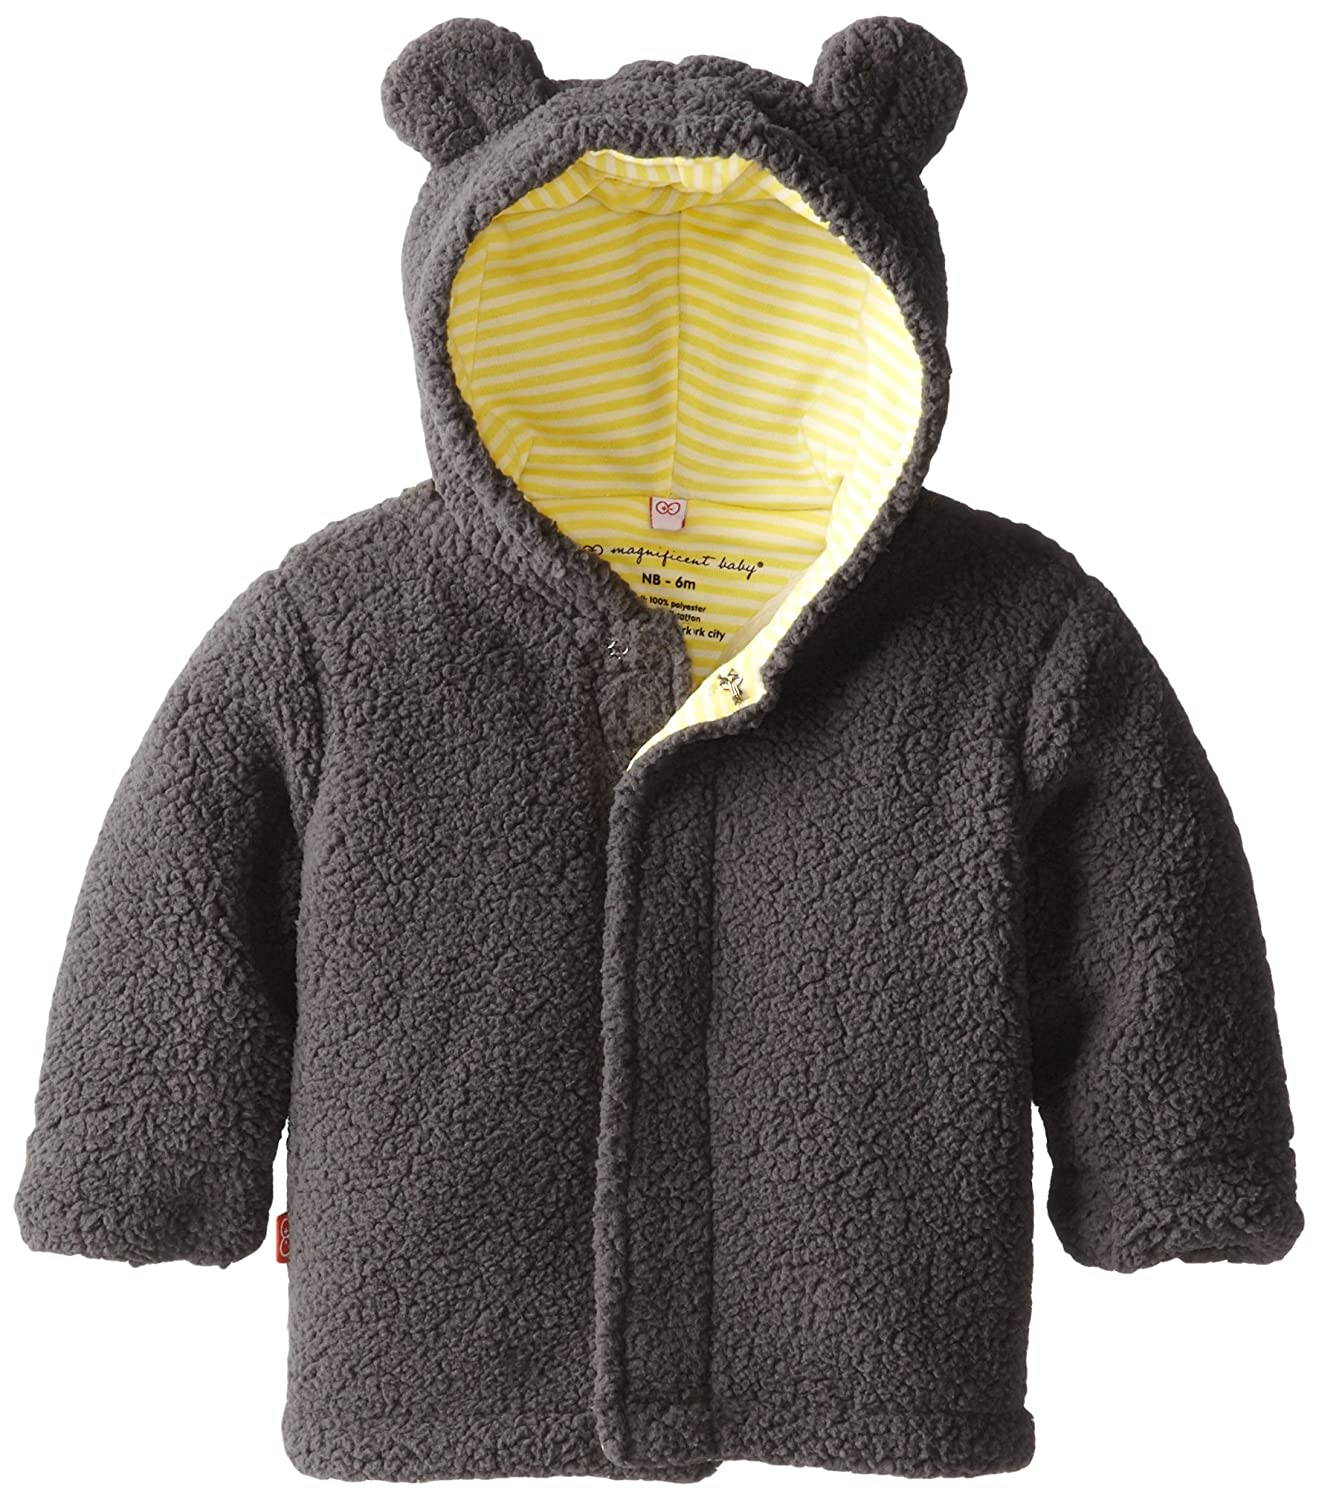 Magnificent Baby Unisexinfant Fleece Bear Jacket 5039-U